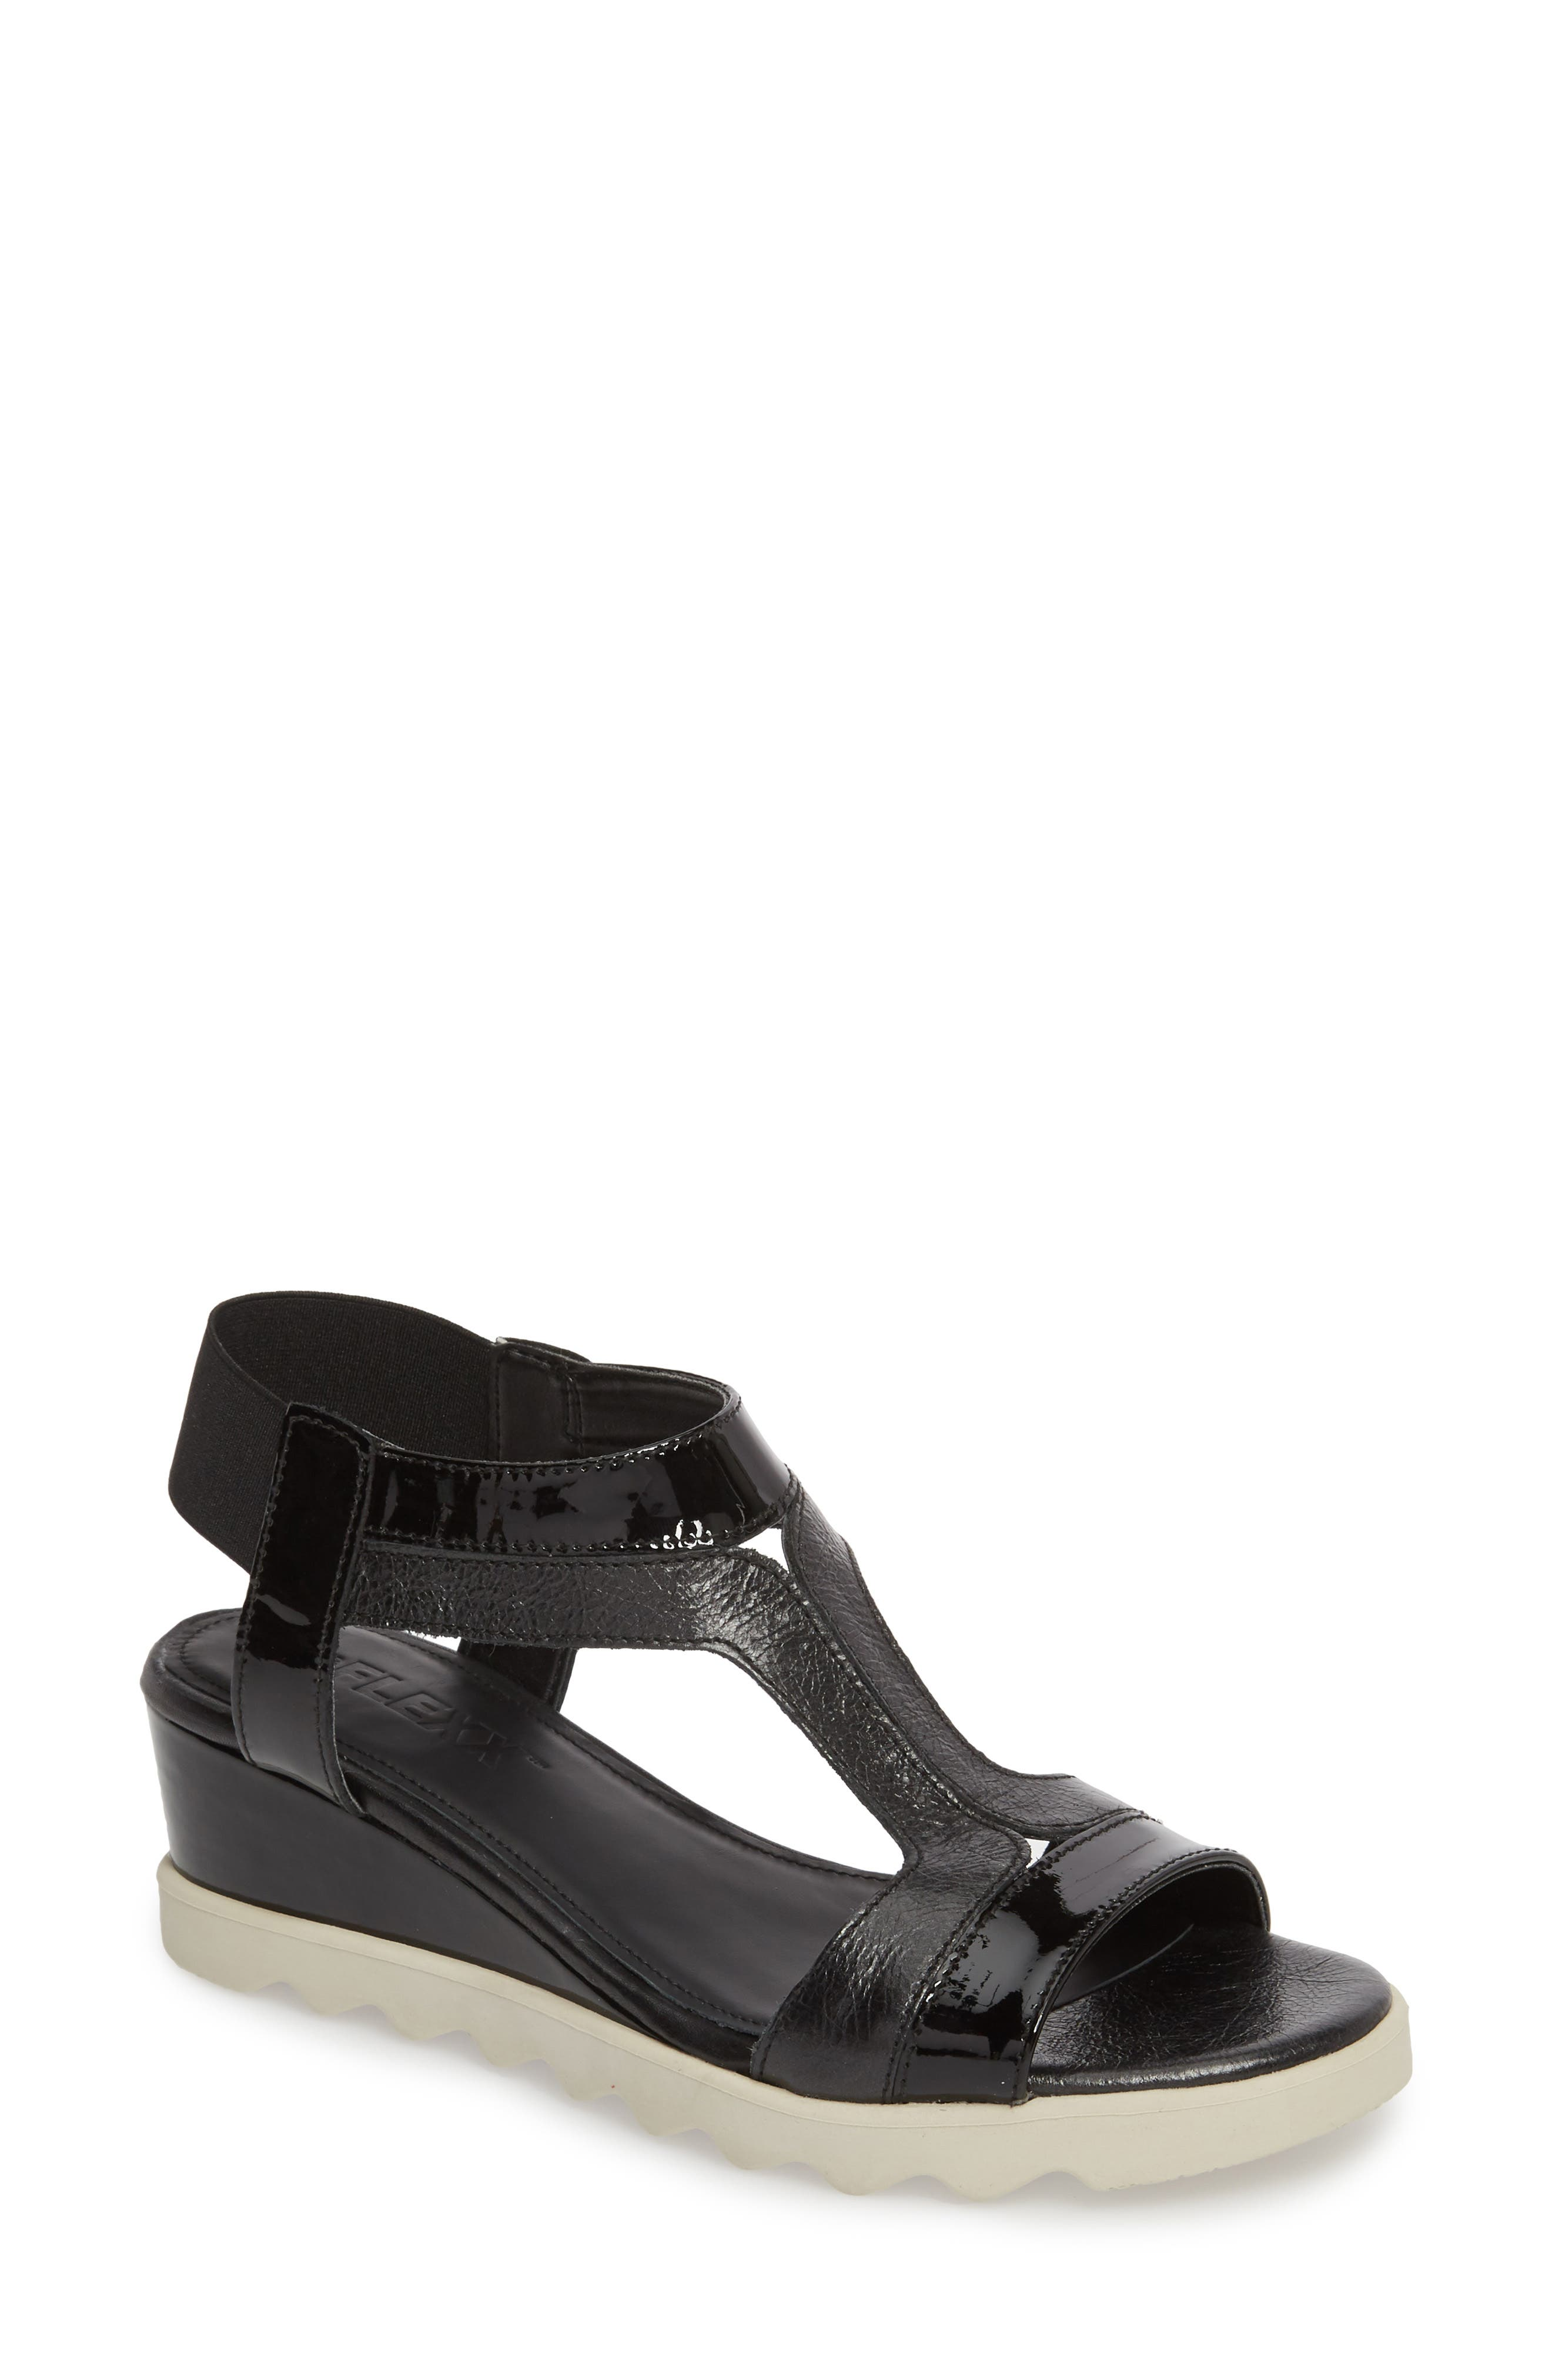 Give A Hoot Wedge Sandal,                         Main,                         color,